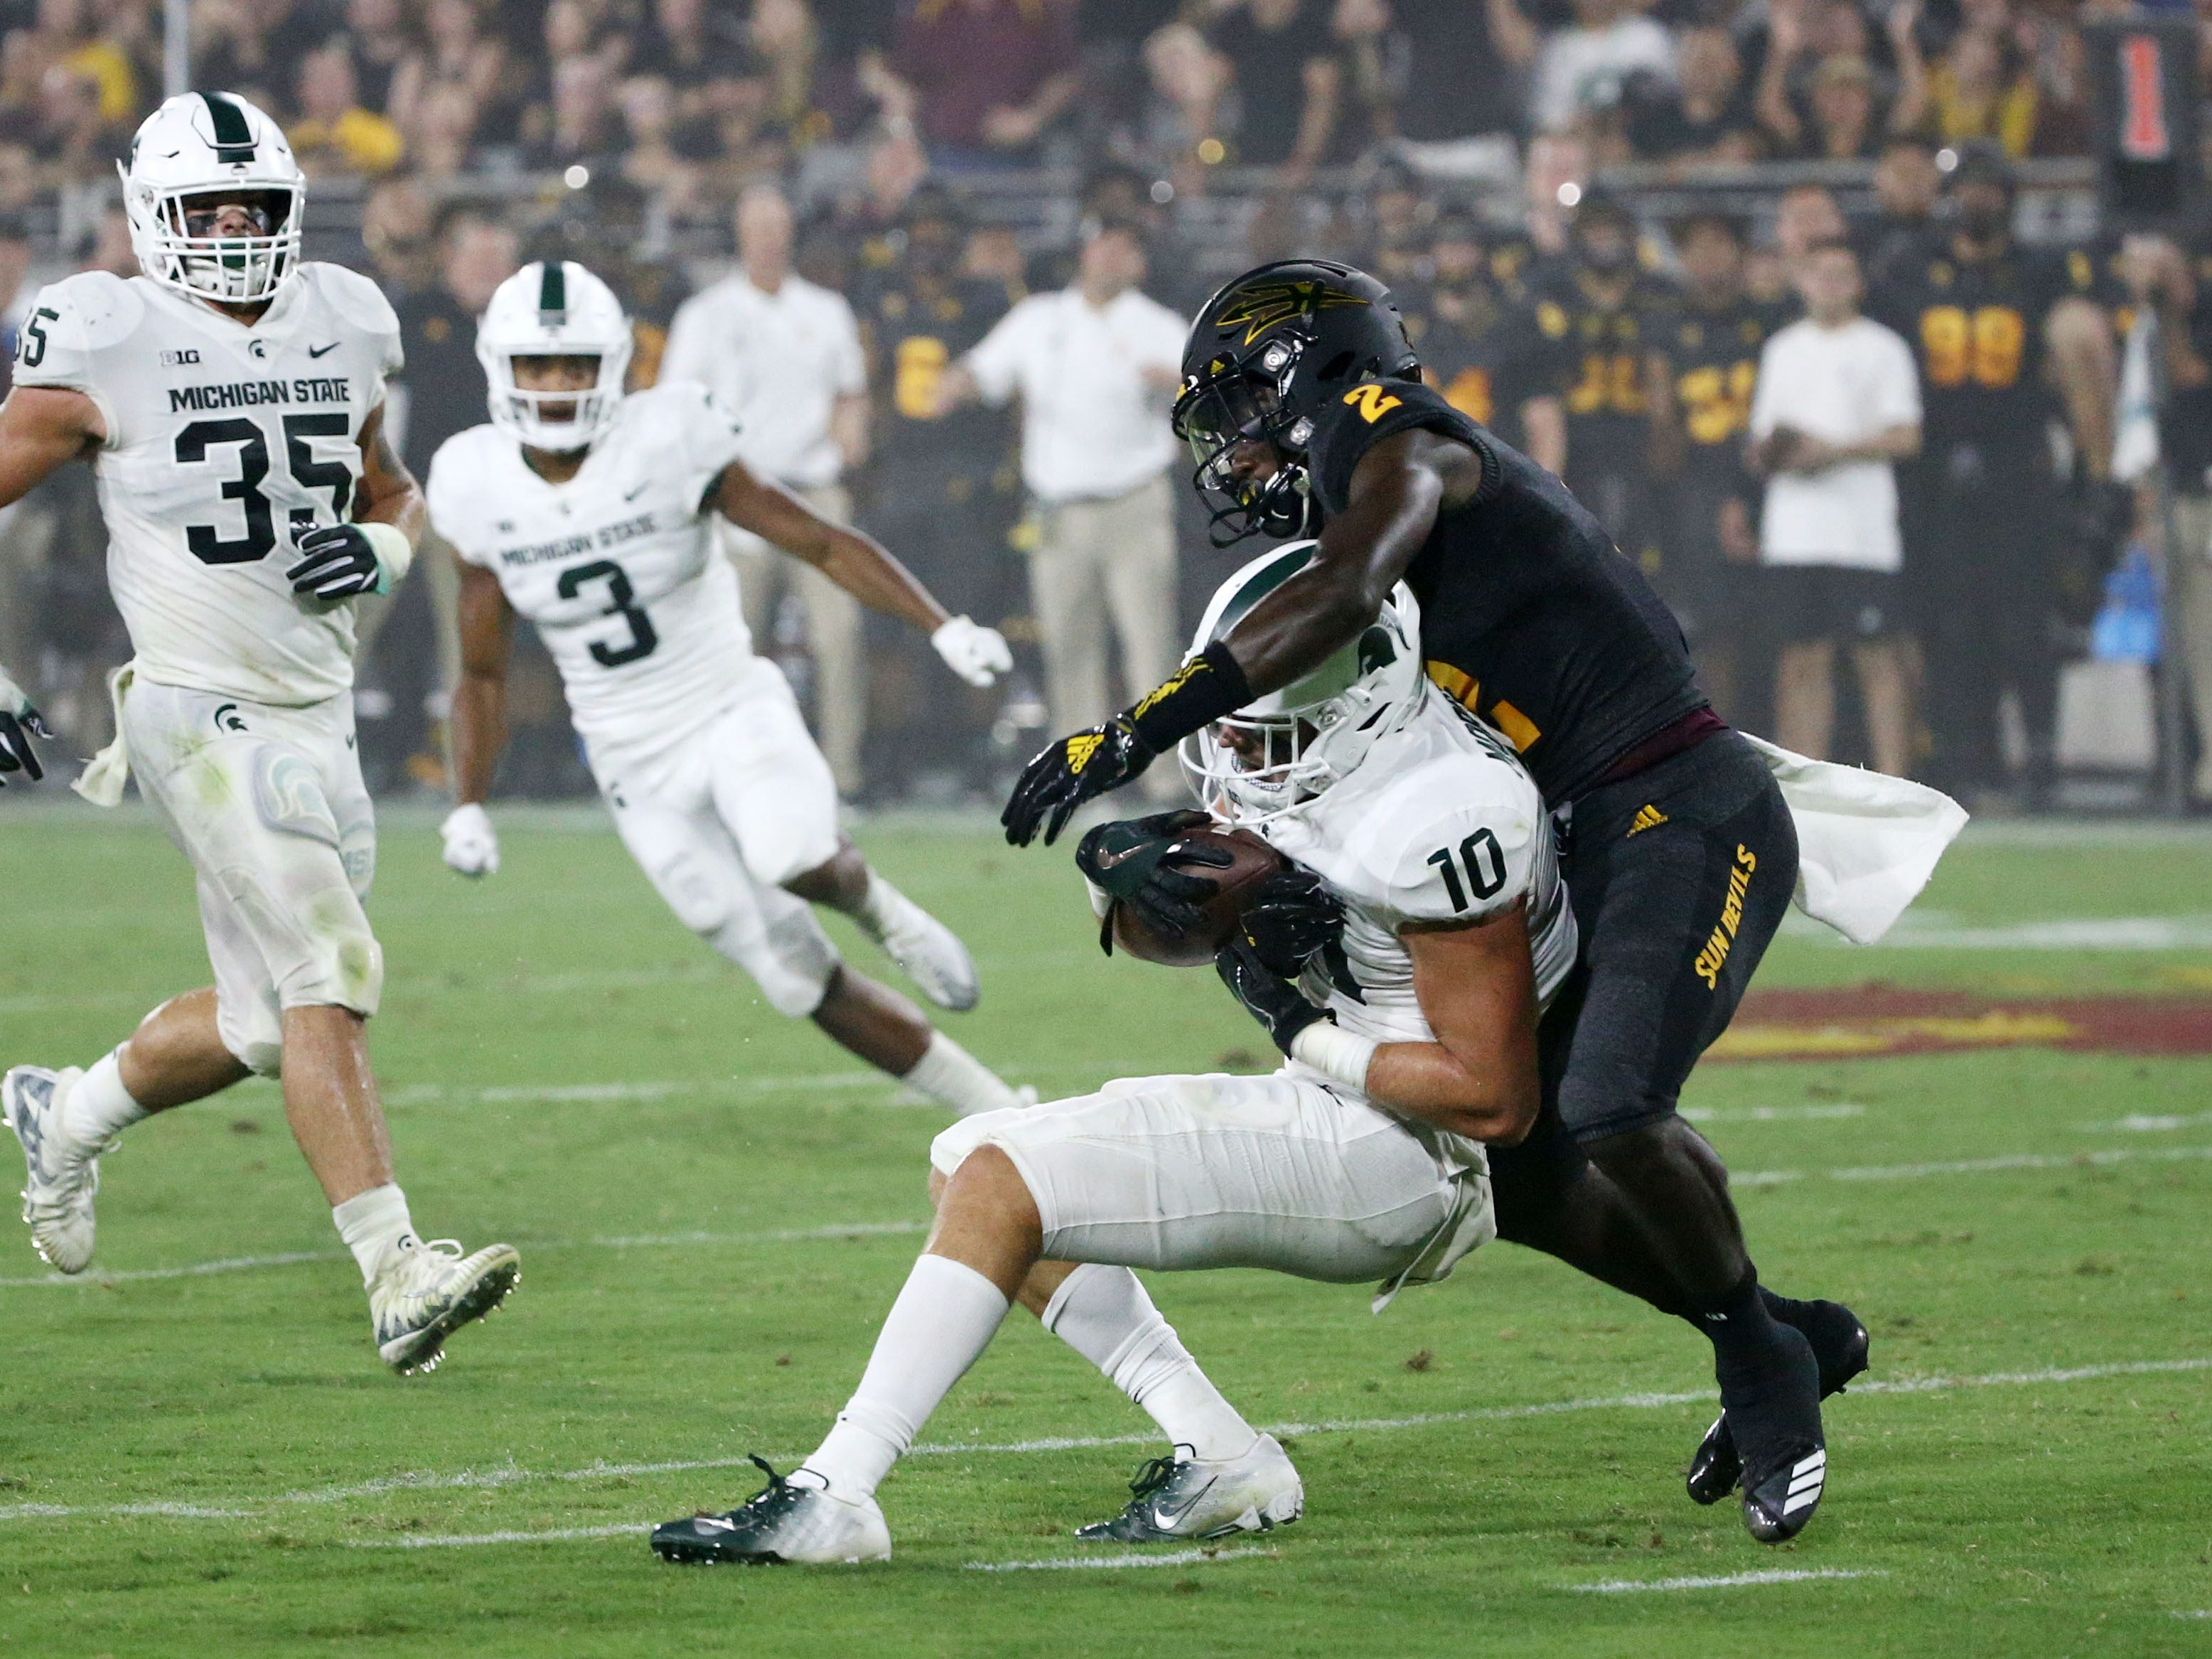 Michigan State safety Matt Morrissey intercepts a pass away from Arizona State wide receiver Brandon Aiyuk in the first half on Sep. 8, 2018, at Sun Devil Stadium.